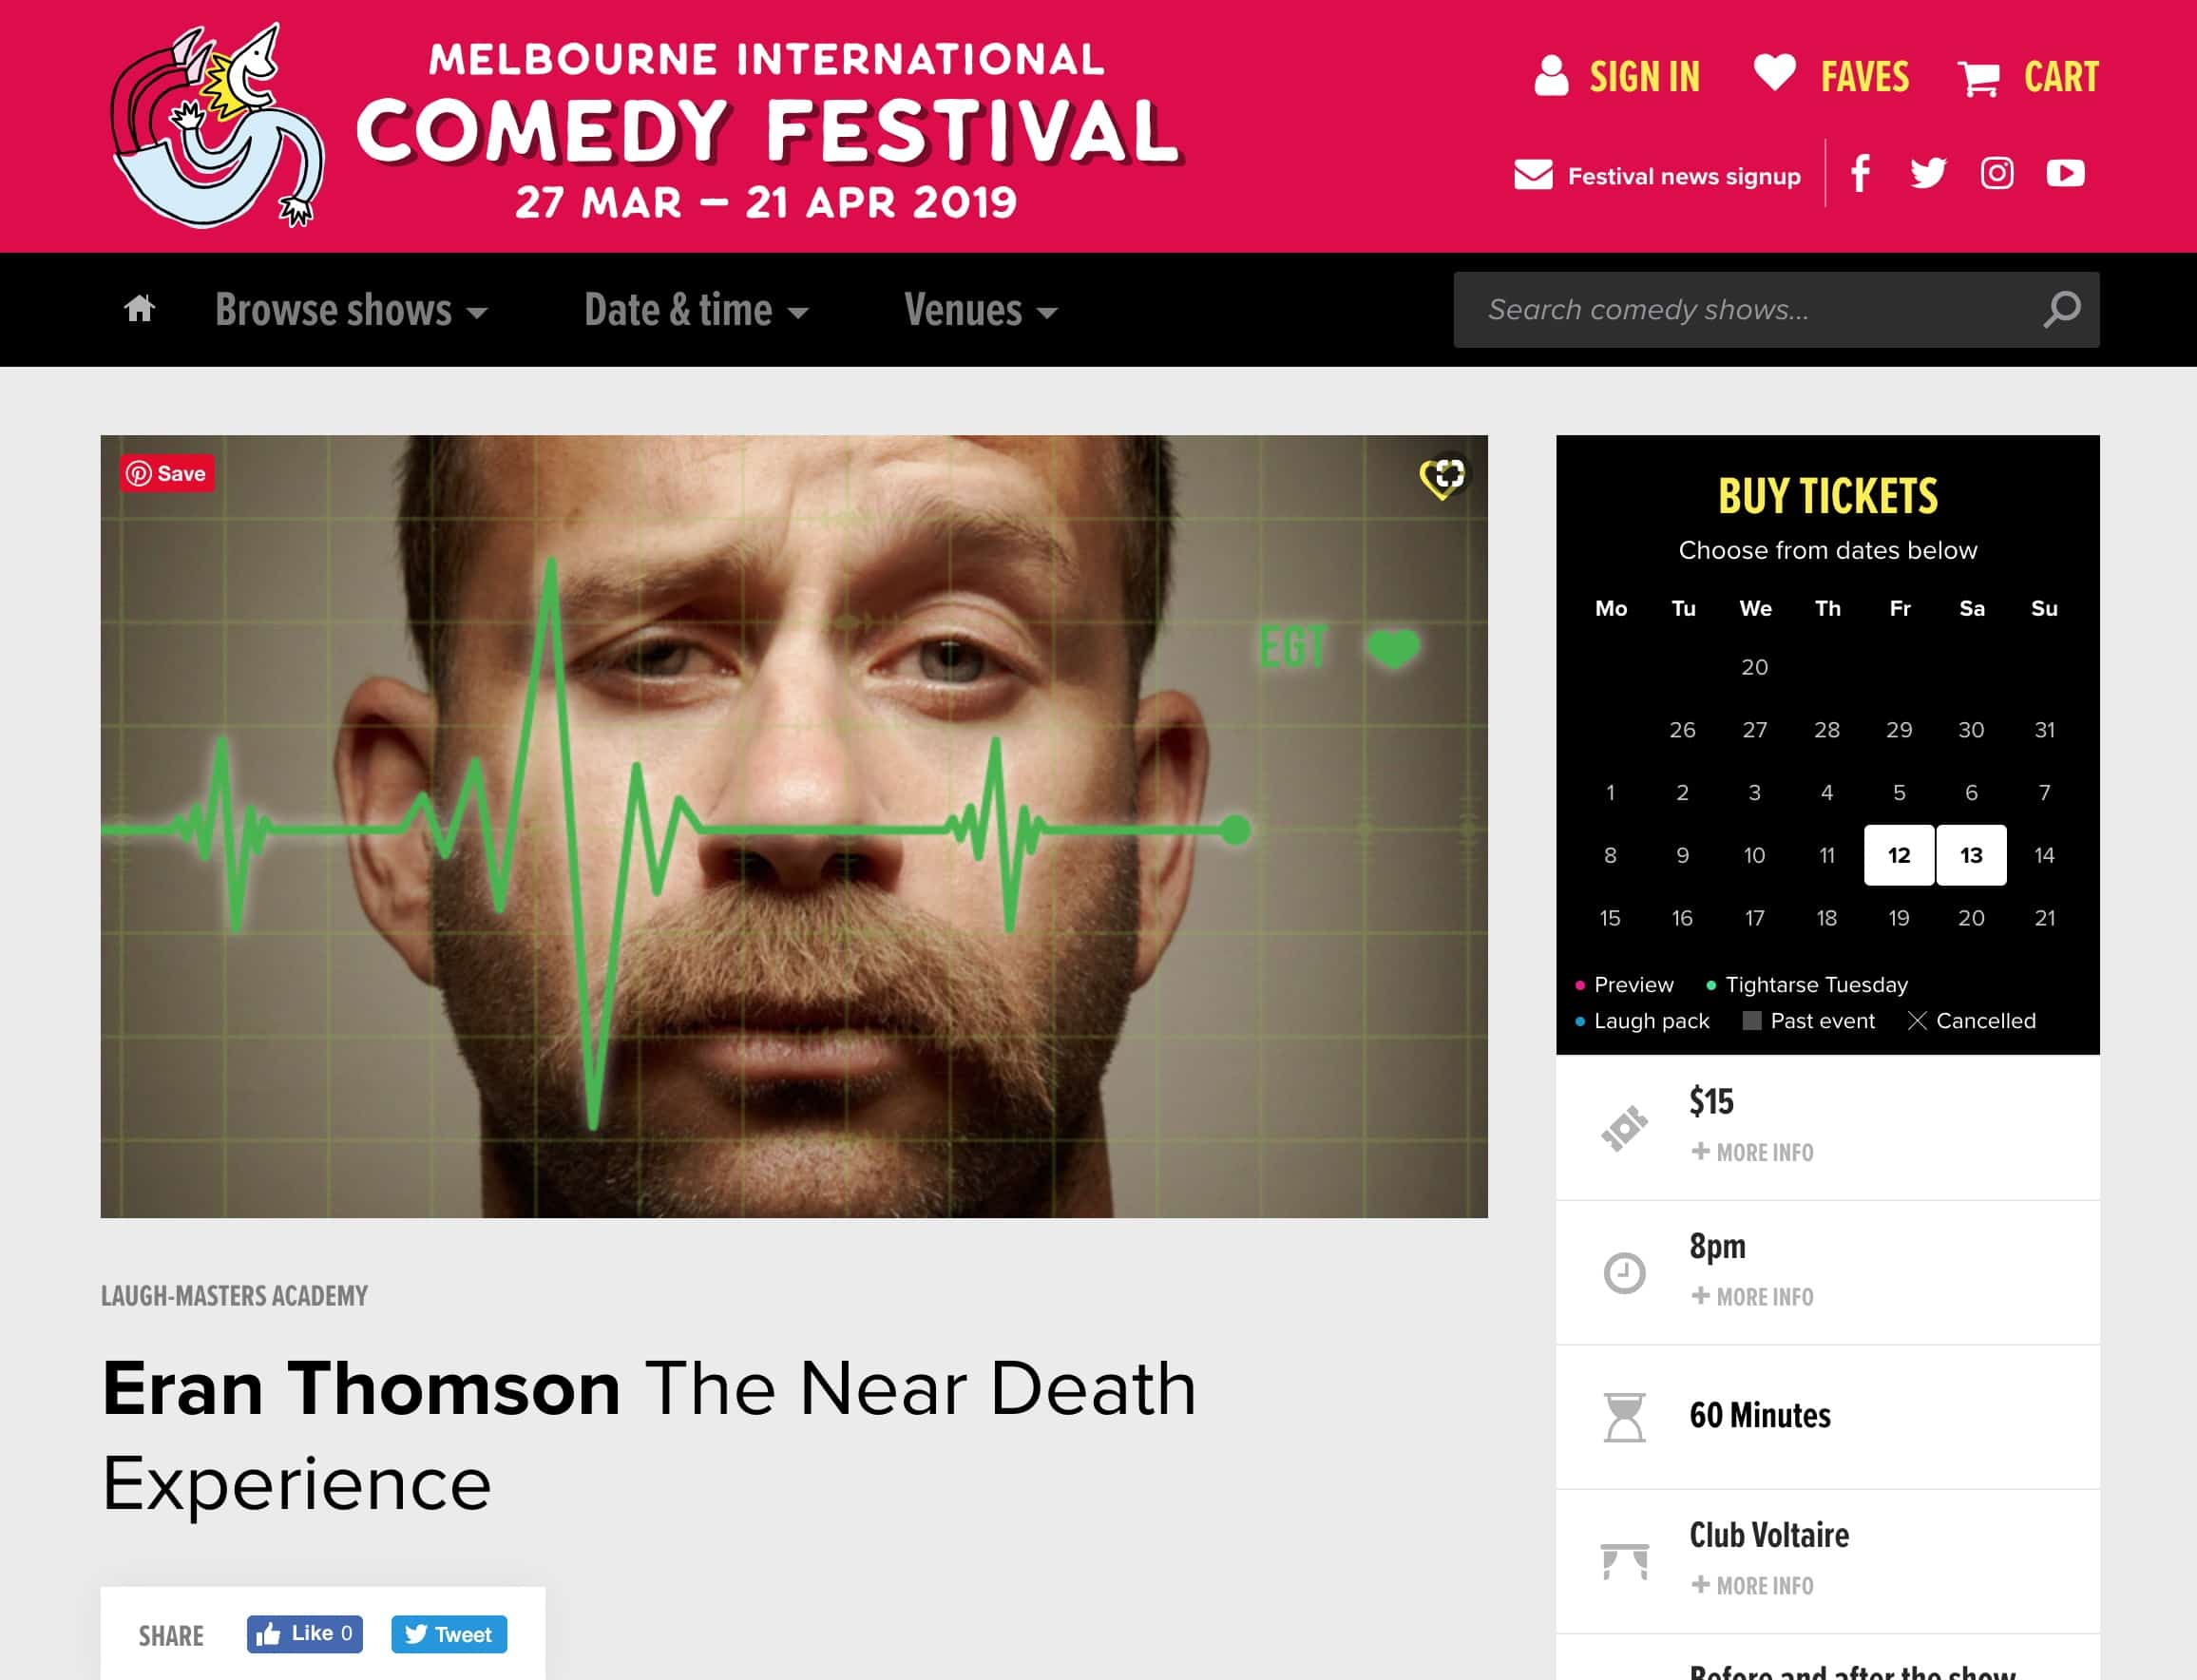 Eran Thomson at the Melbourne International Comedy Festival - The Near Death Experience